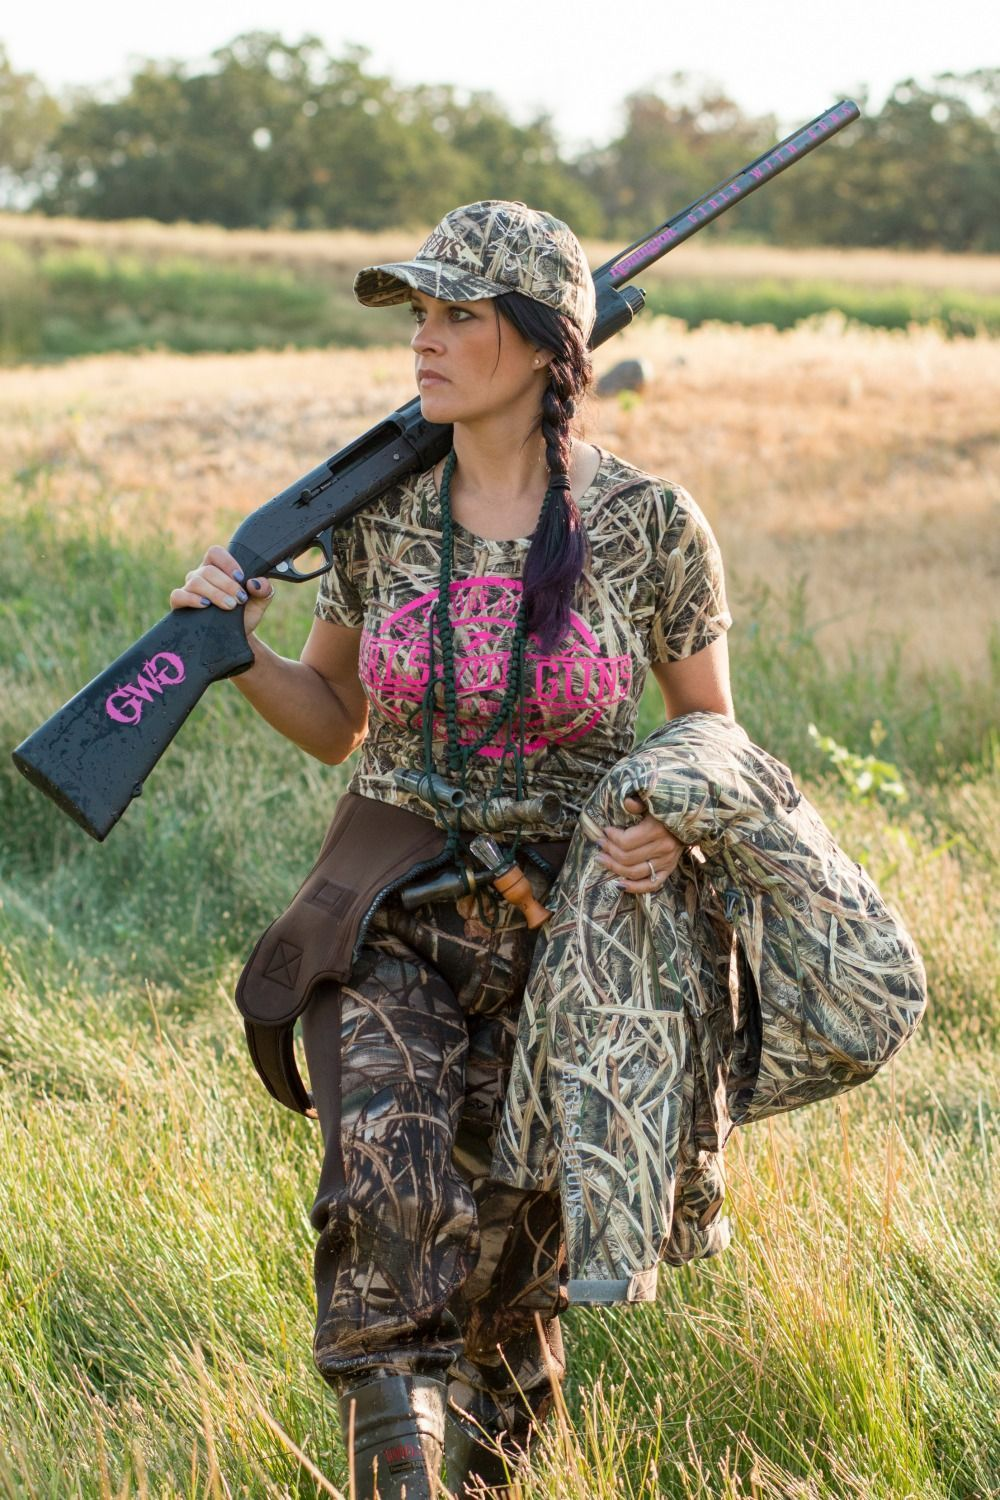 c5ae85a77d45d The Girls With Guns Clothing Waterfowl Hunting Gear was designed by women,  for women.